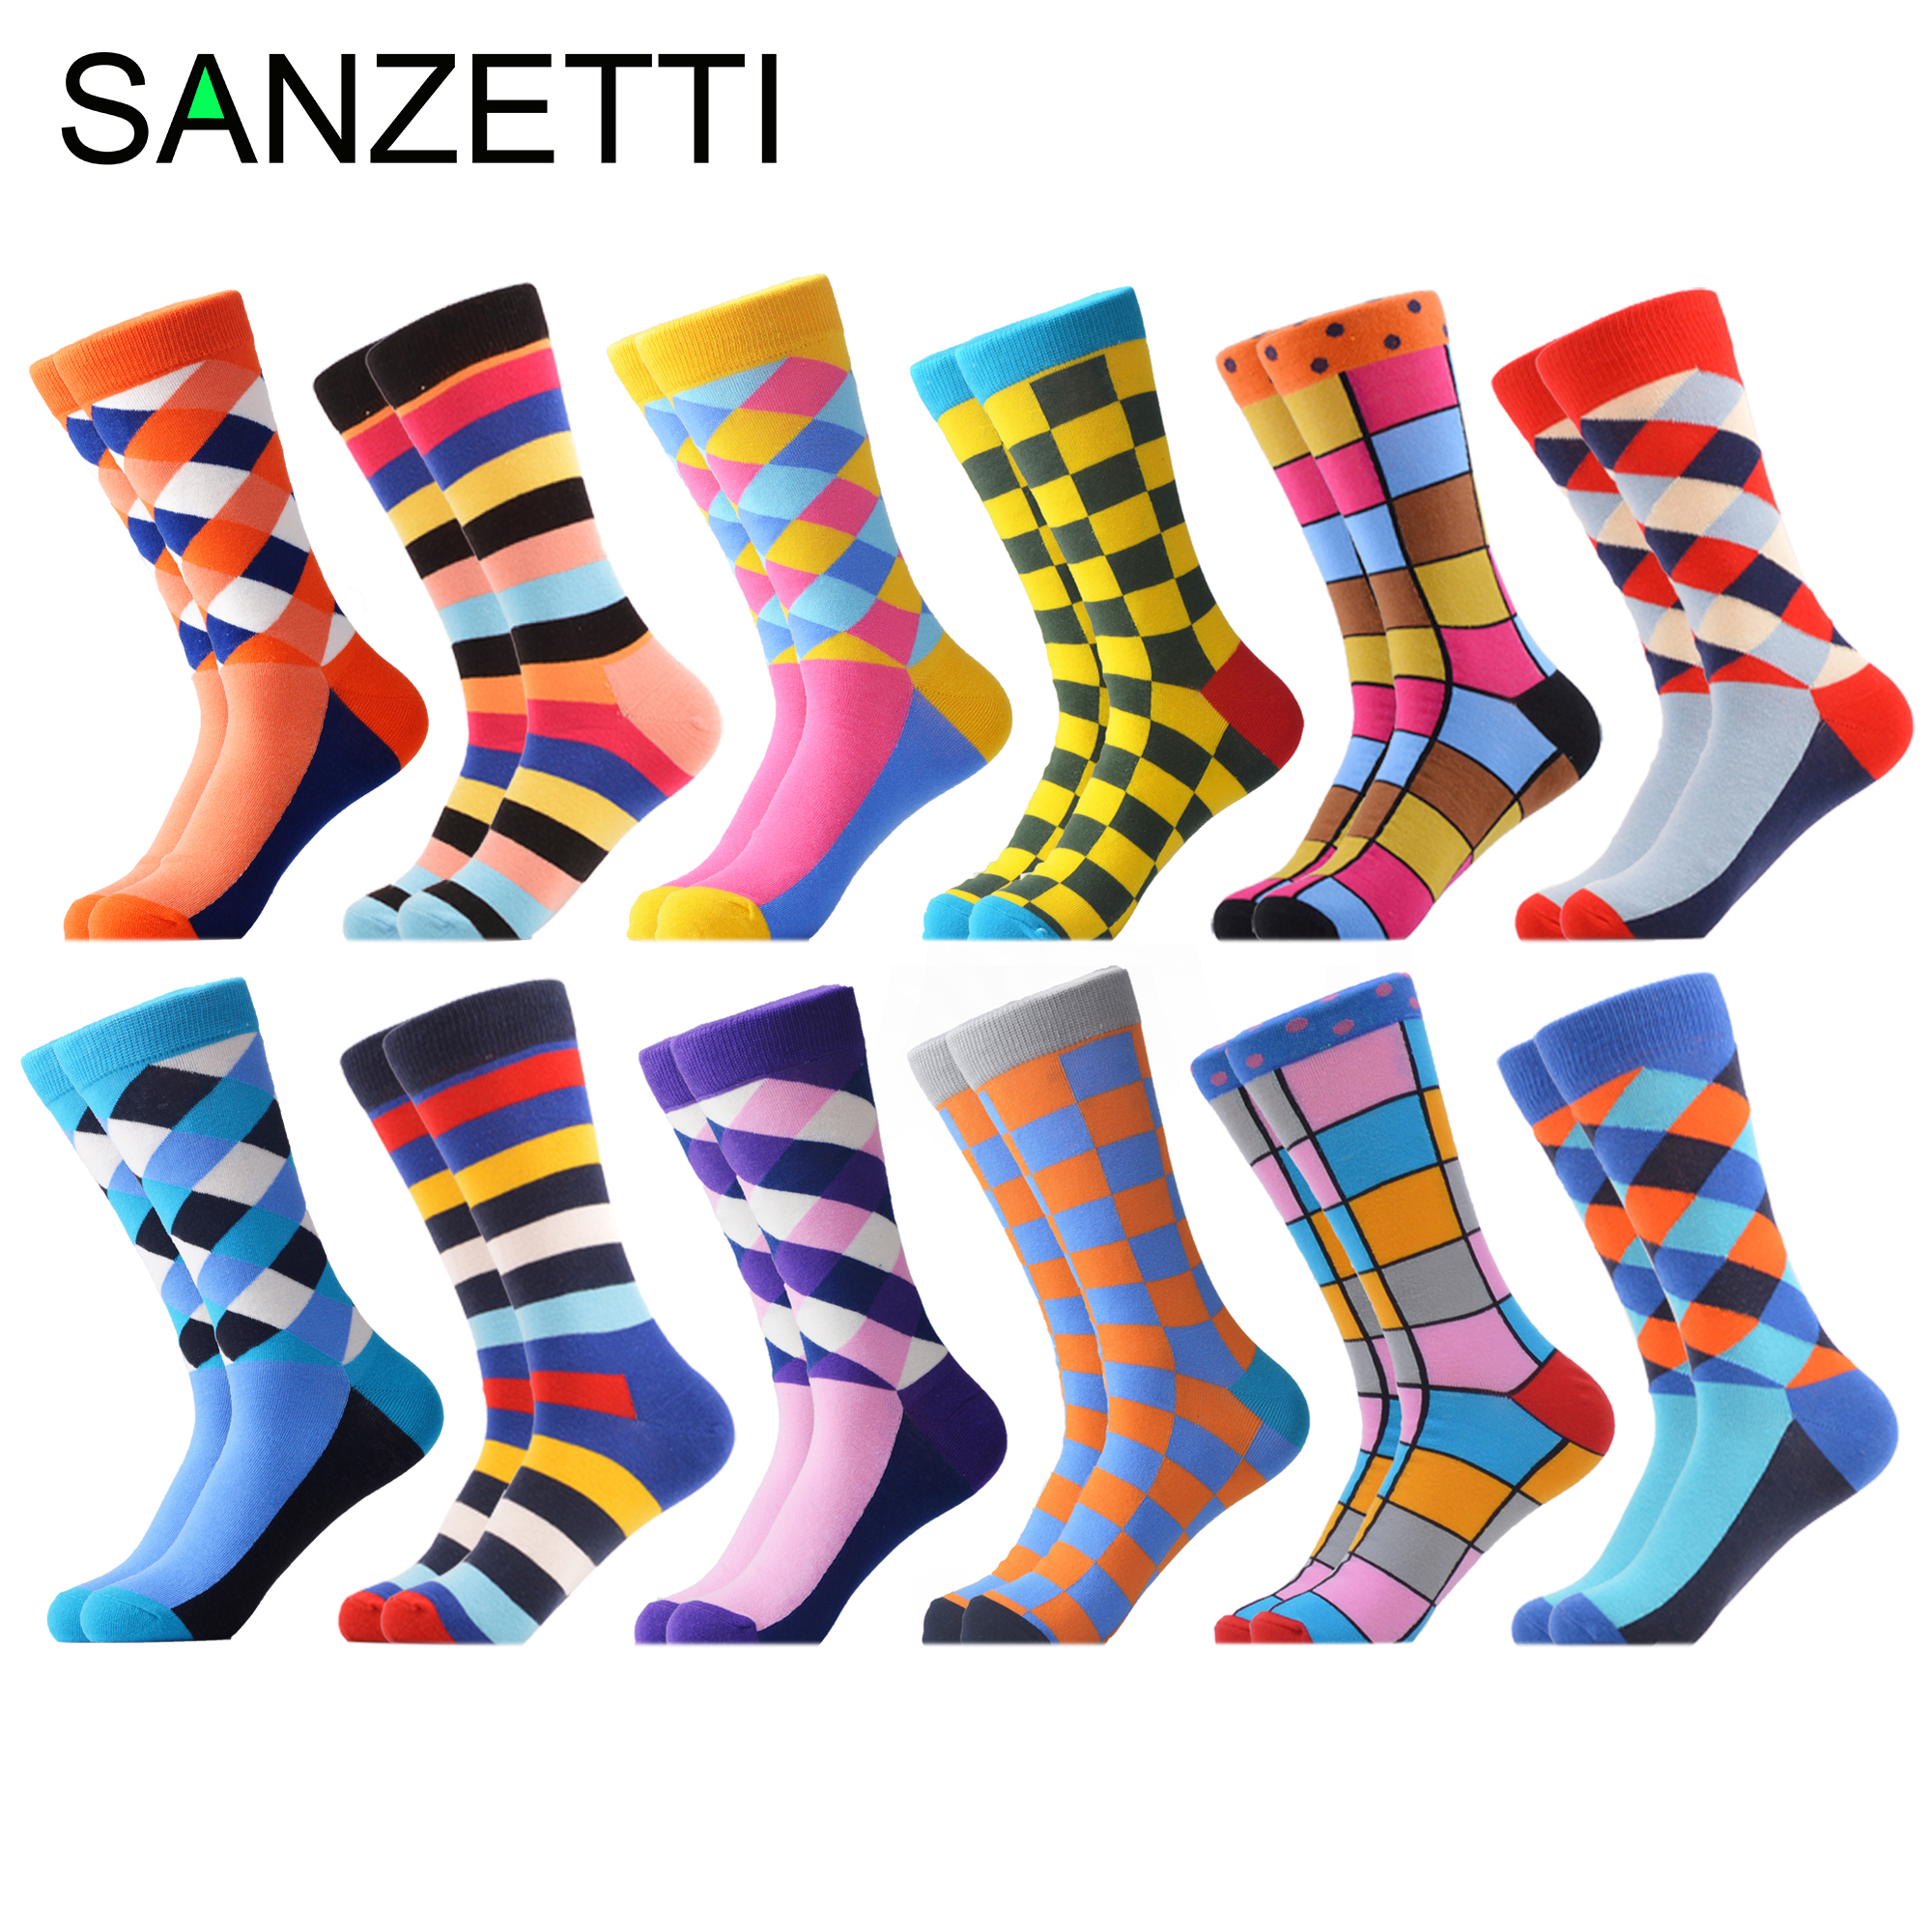 SANZETTI 12 Pairs/Lot 2019 Newest Winter Warm Colorful Men's Casual Combed Cotton Happy Crew Socks Novelty Dress Wedding Socks